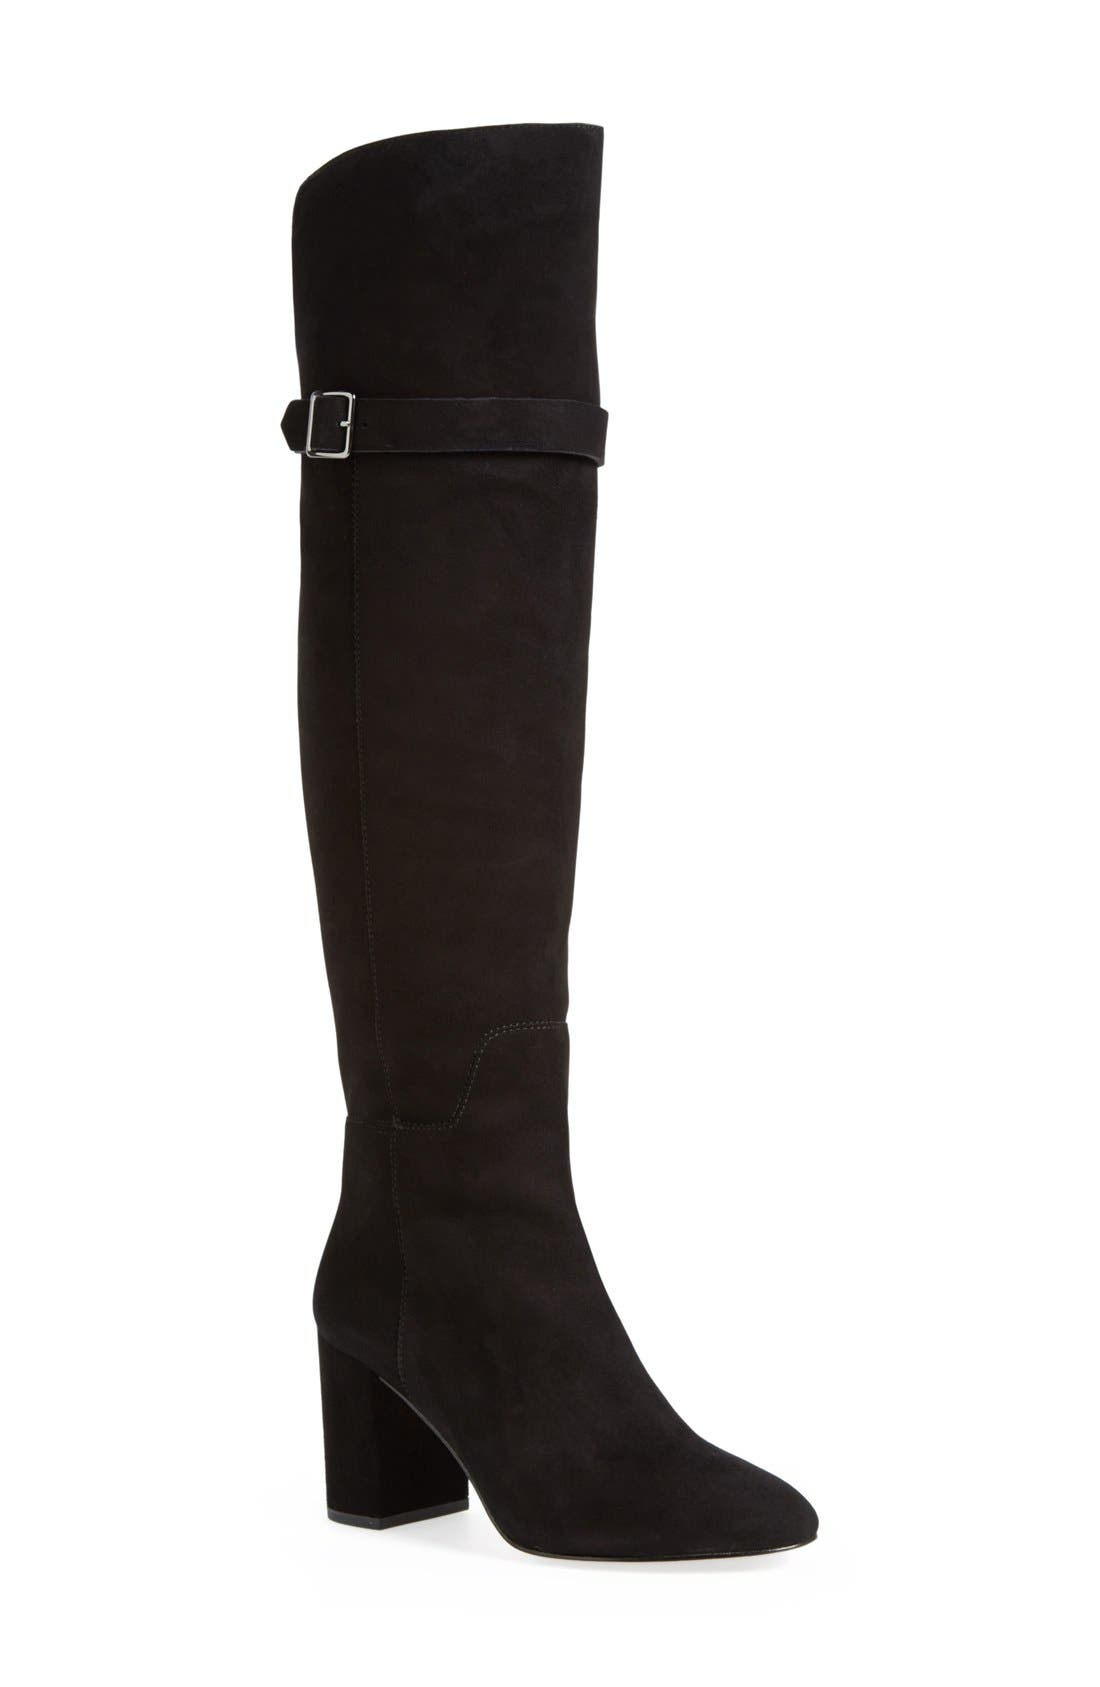 Alternate Image 1 Selected - Pour la Victoire'Dania' Over the Knee Boot (Women)